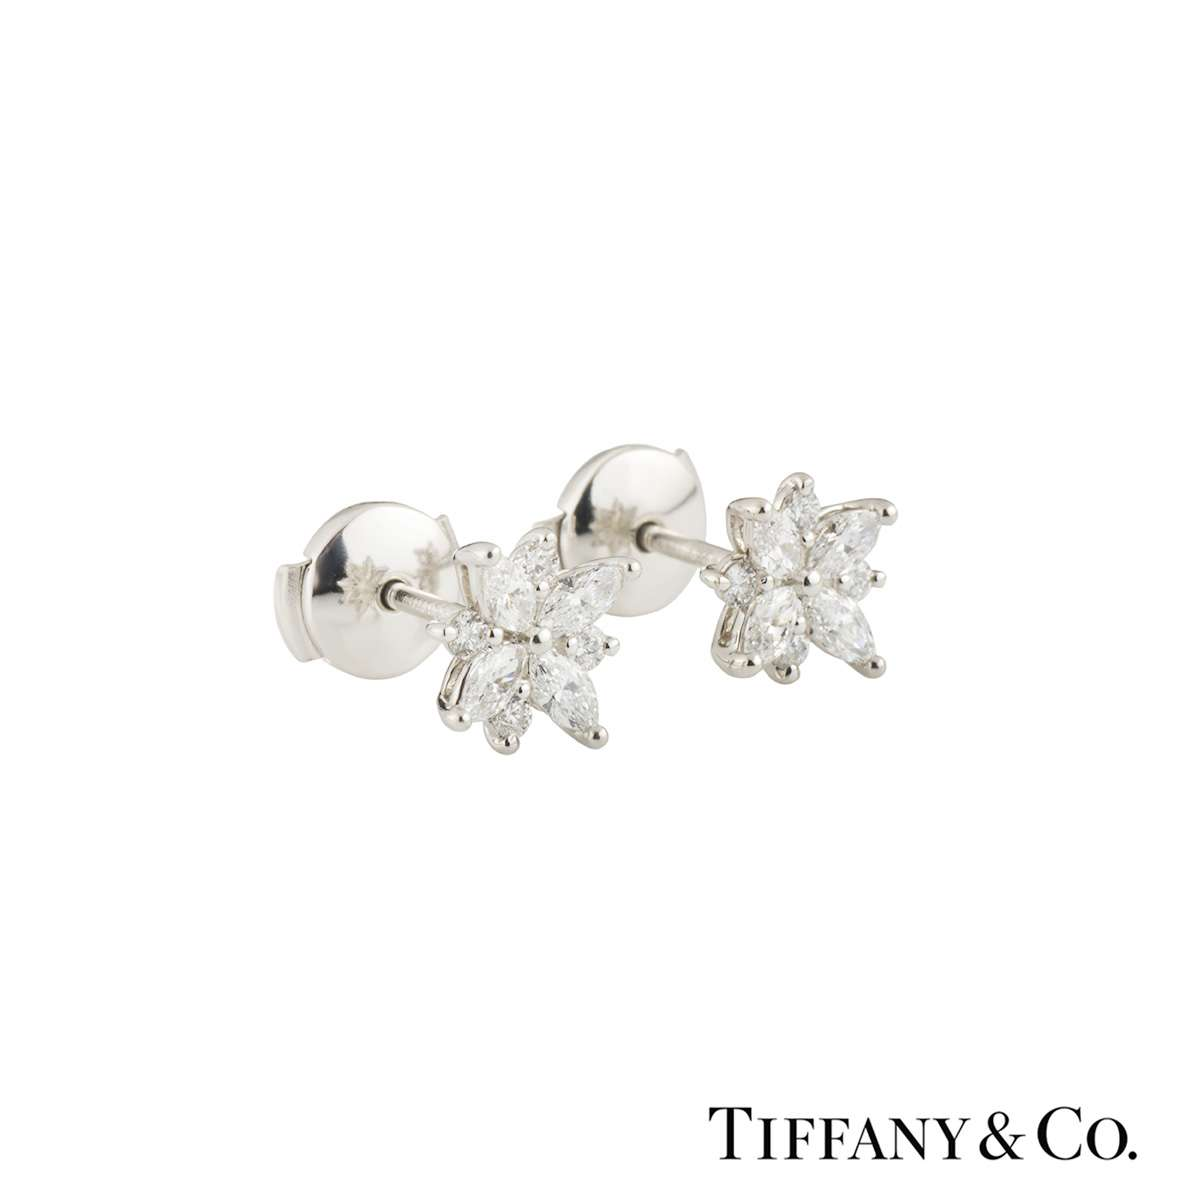 Tiffany & Co. Platinum Victoria Cluster Earrings